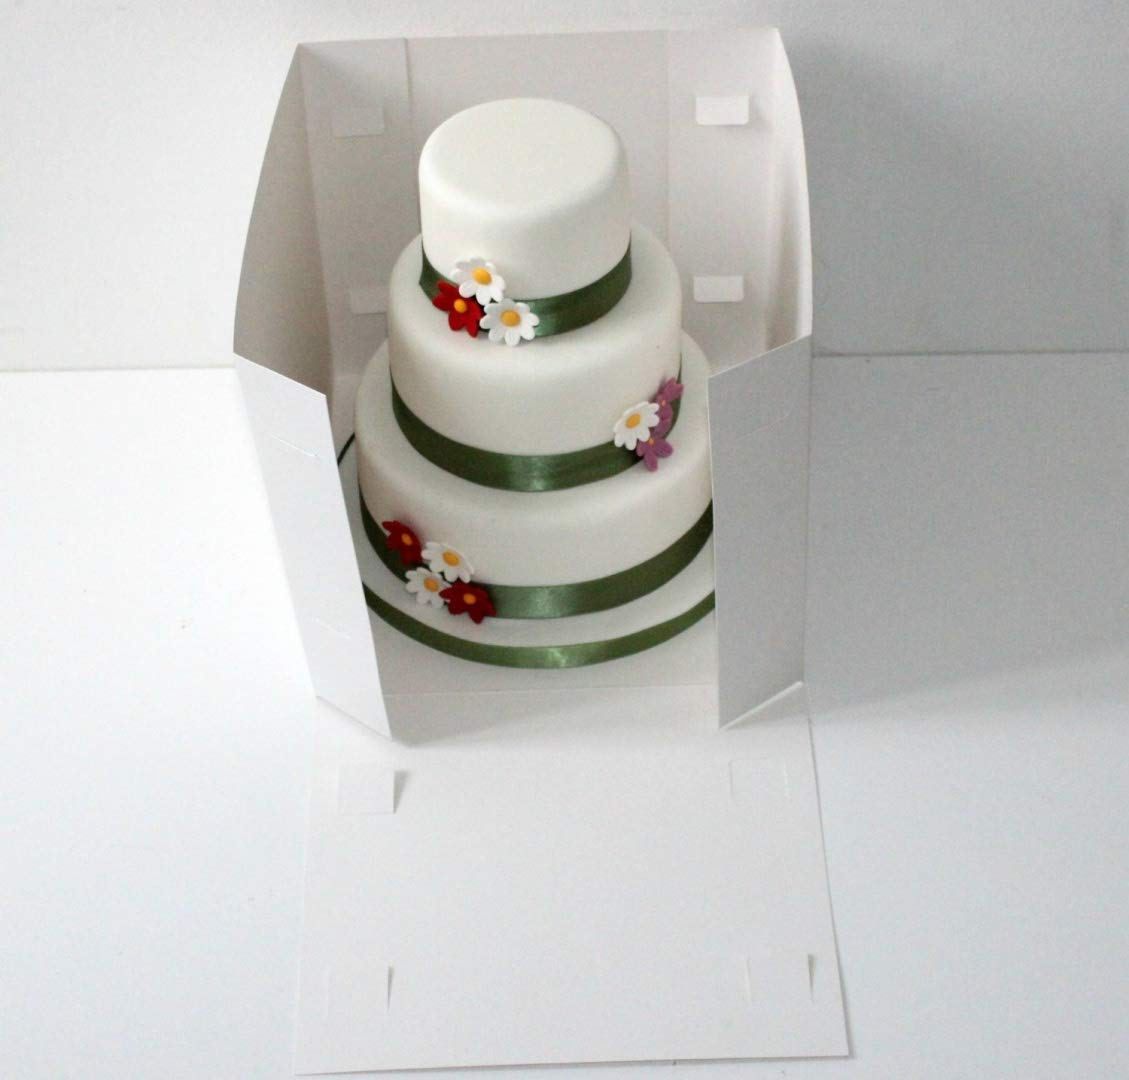 14 x 13 Inch Tall Tiered/ Stacked Cake Box The Cake Decorating Shop